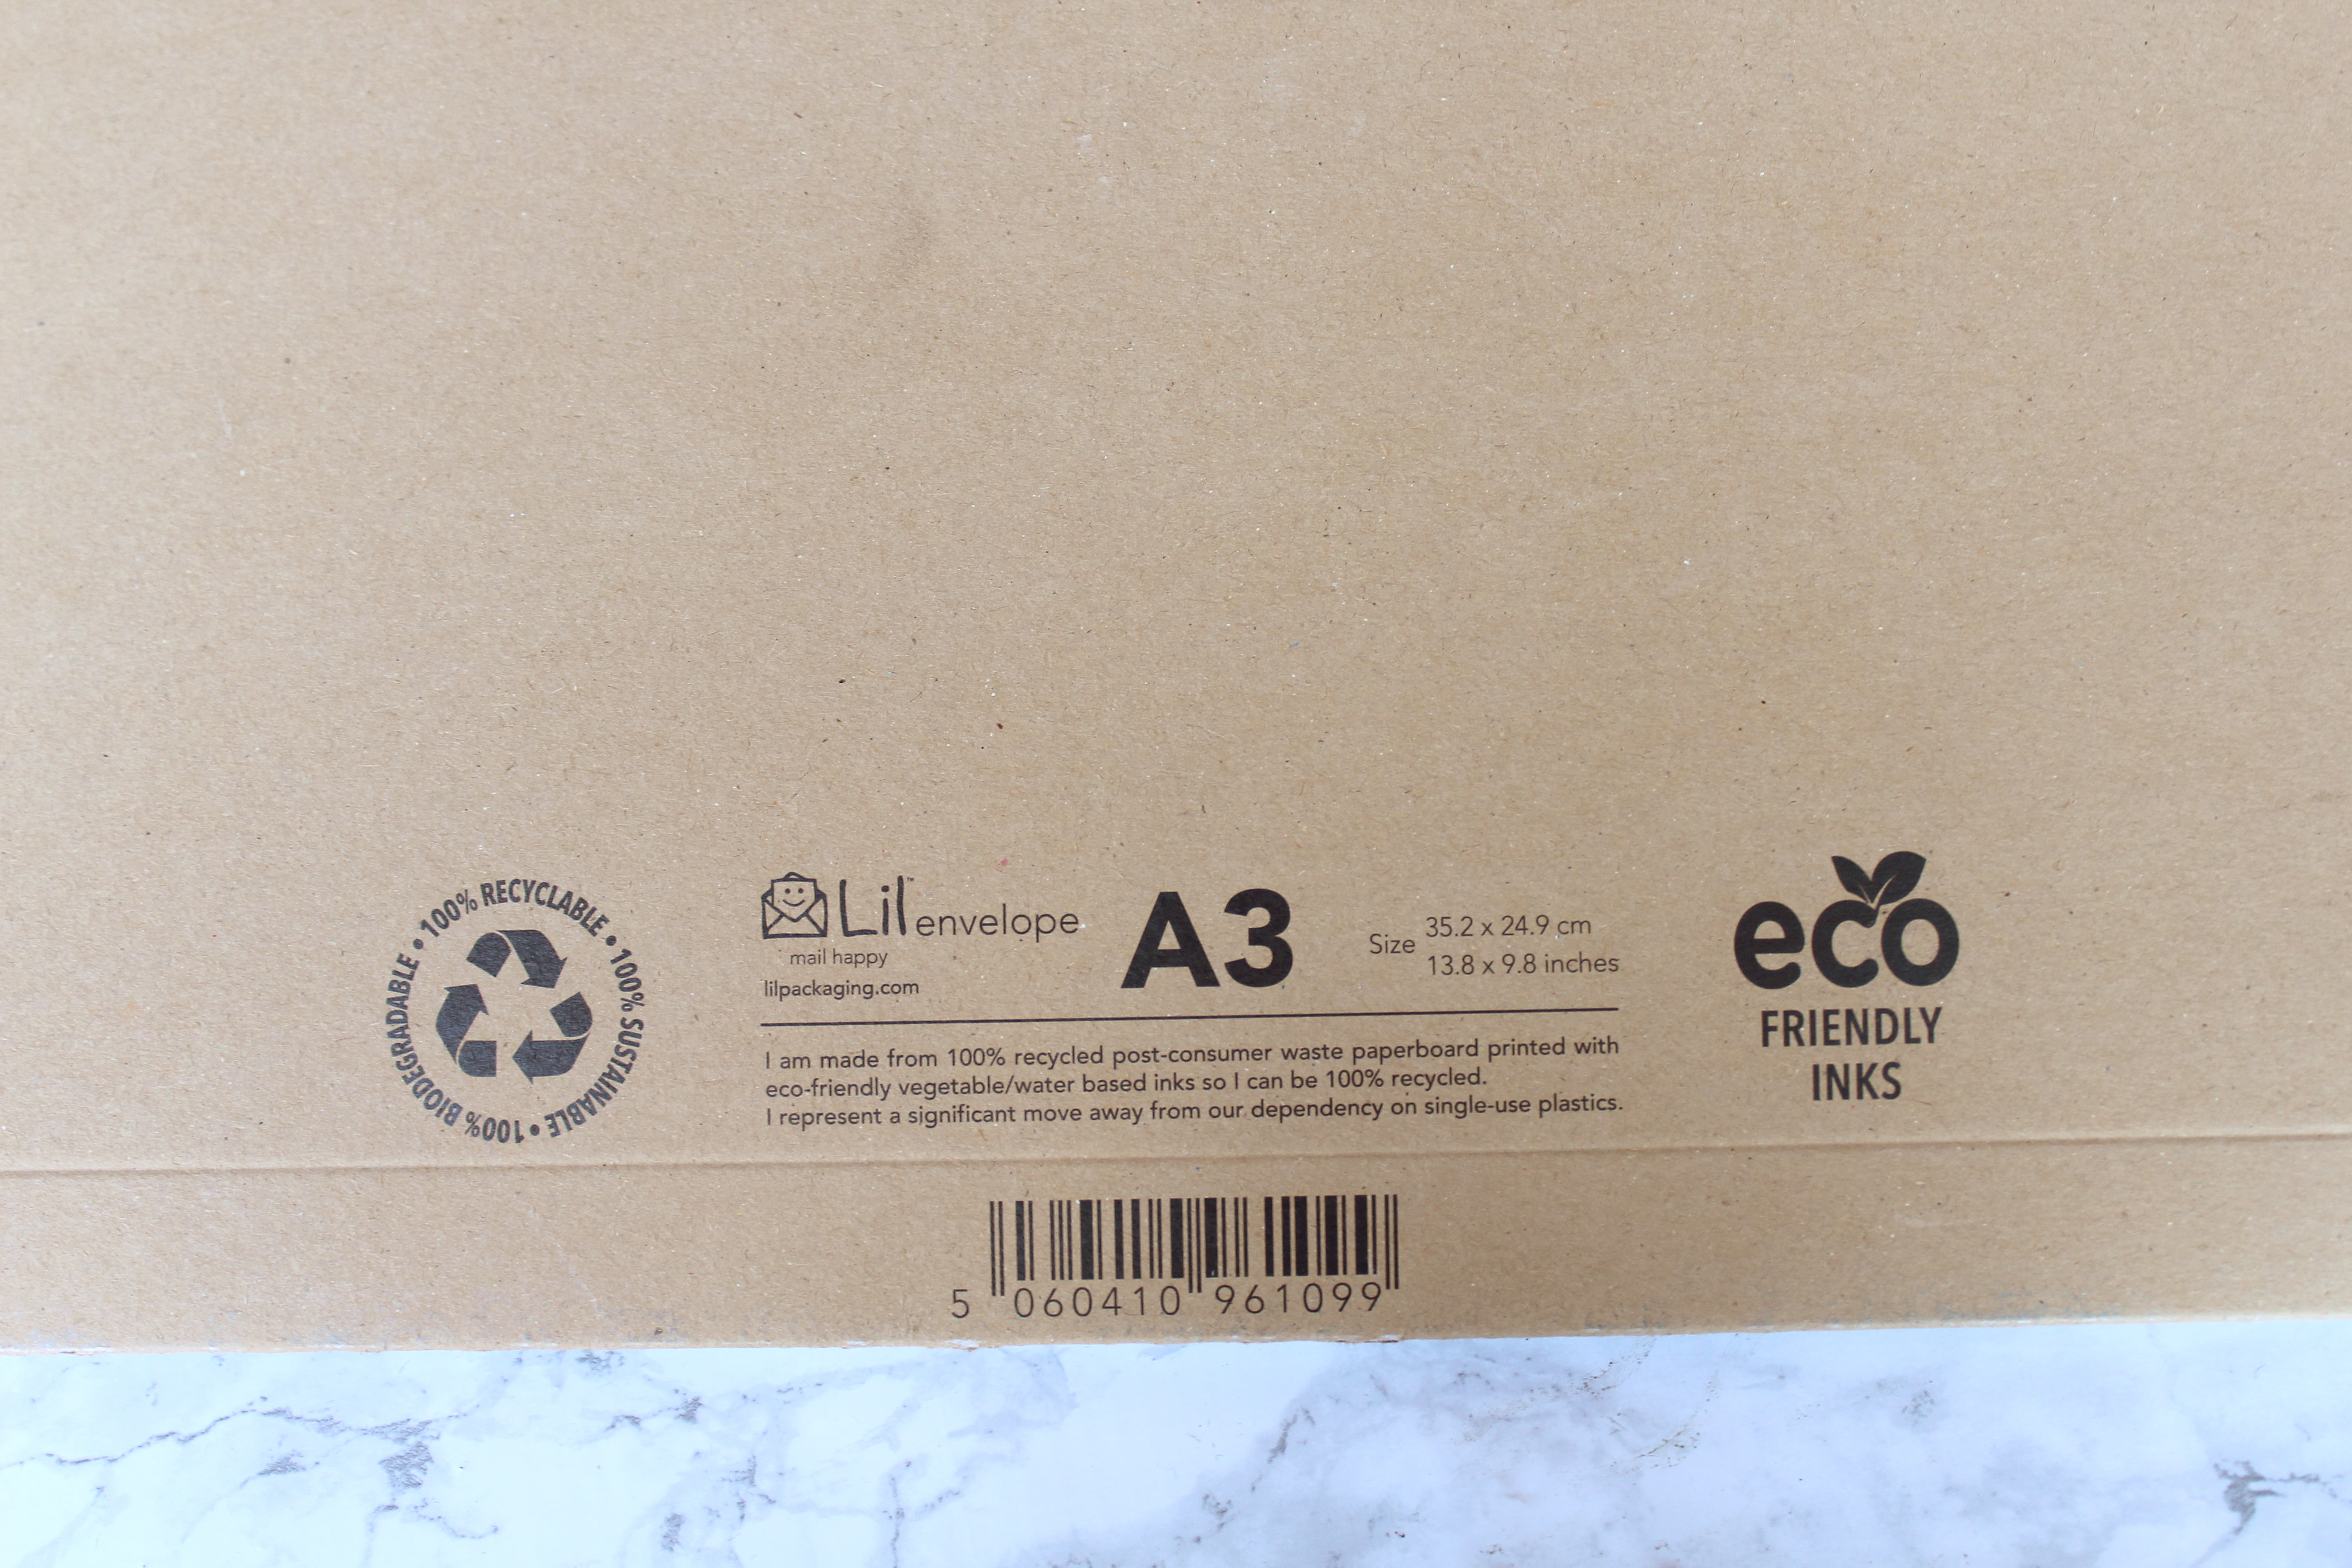 Eco-friendly packaging - cardboard envelopes with eco friendly inks.